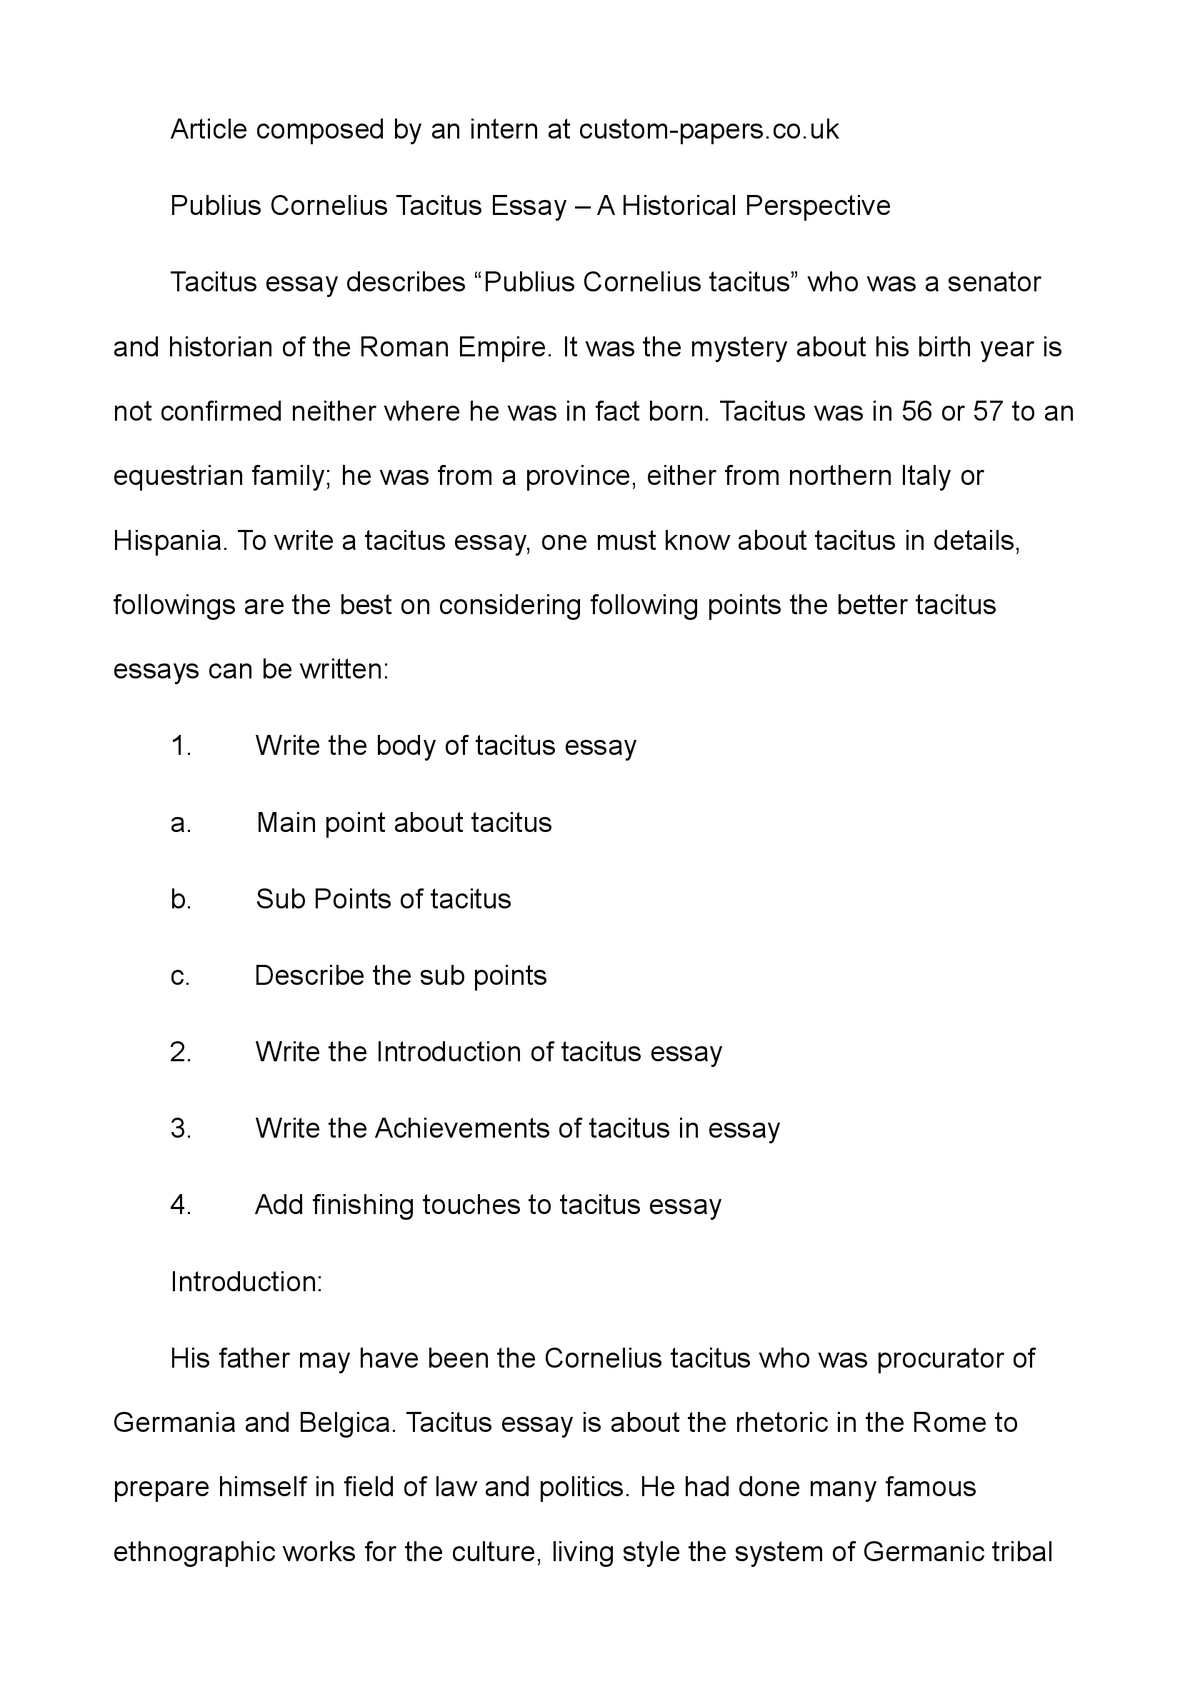 essay on tacitus Tacitus this essay tacitus and other 64,000+ term papers, college essay examples and free essays are available now on reviewessayscom autor: review • november 20, 2010 • essay • 909 words (4 pages) • 589 views.